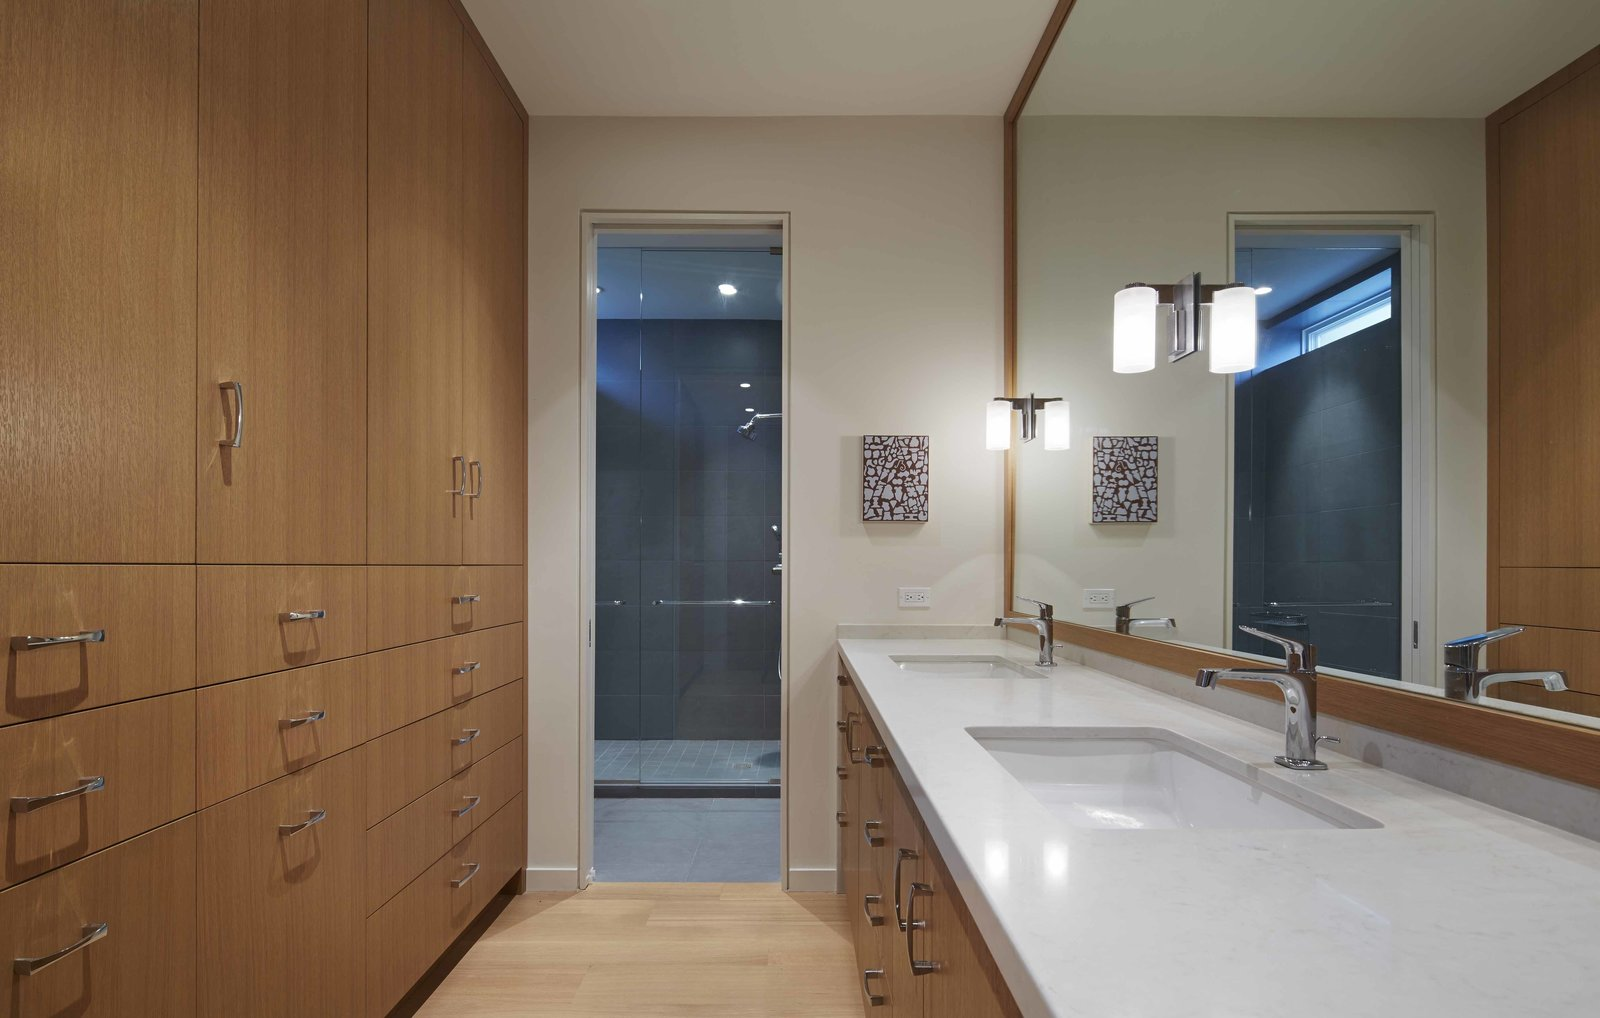 """The master bathroom strikes a balance between the desires of both parties. Warm wood cabinets and floors mingle with the darker glass and stone setup in the shower area. """"Although this was very much Lisa's addition, there was an understanding between the two that Bruce had to be part of it,"""" Valerio says.  Photo 6 of 6 in A Two-Story Addition Turned a Bachelor Pad Into a Comfortable Home For Two"""